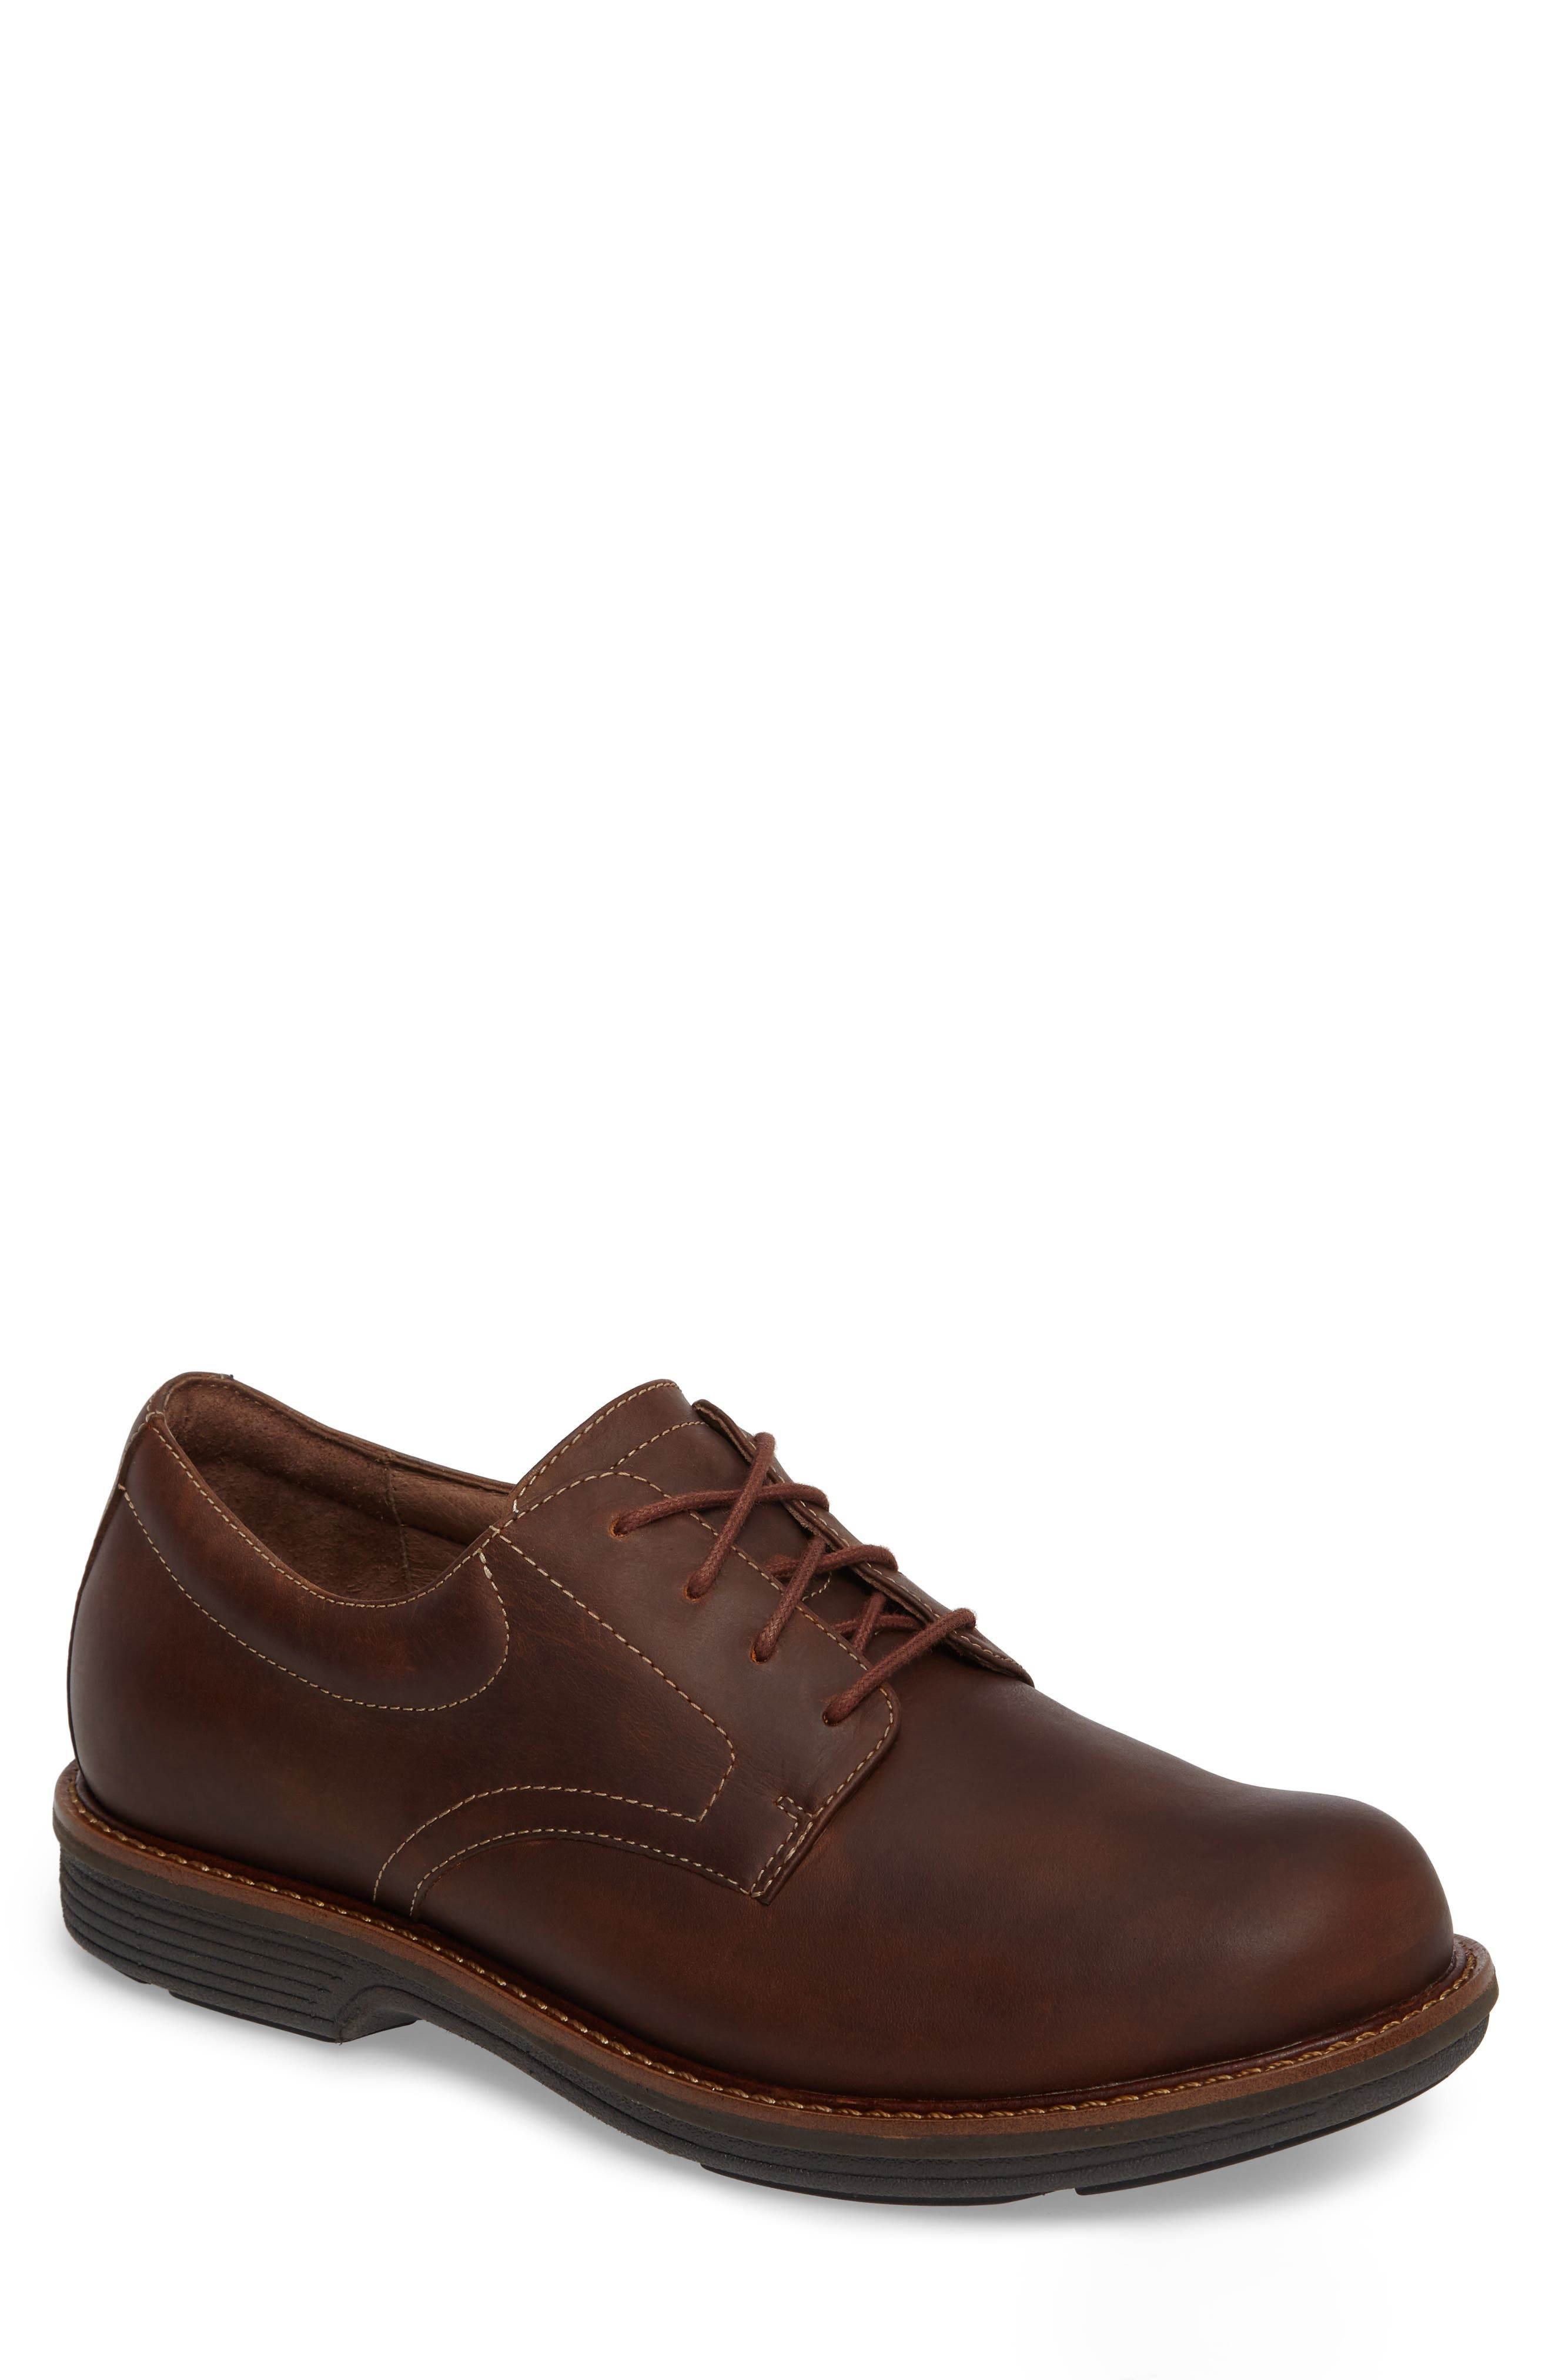 Dansko 'Josh' Plain Toe Derby (Men)